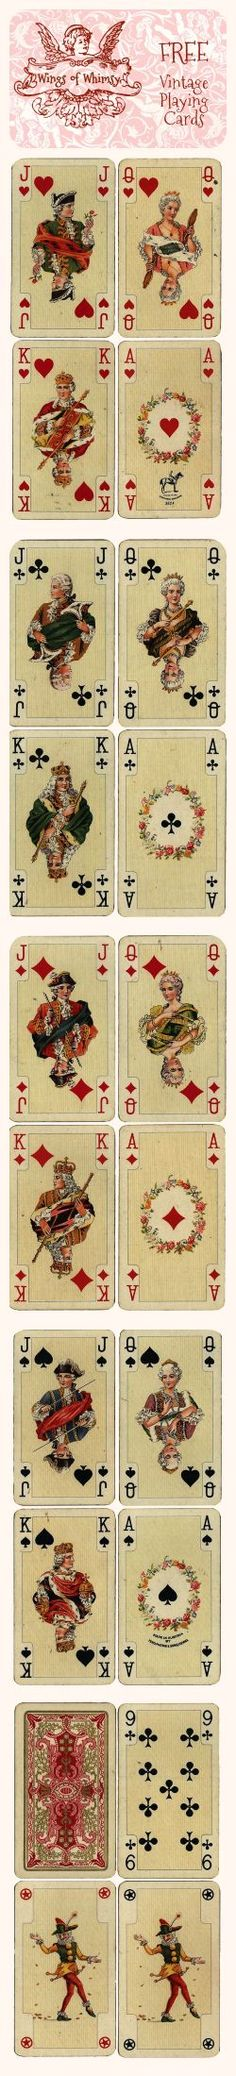 Vintage French Playing Cards * 1500 free paper dolls at Arielle Gabriel's The International Paper Doll Society for paper doll pals at Pinterest *: